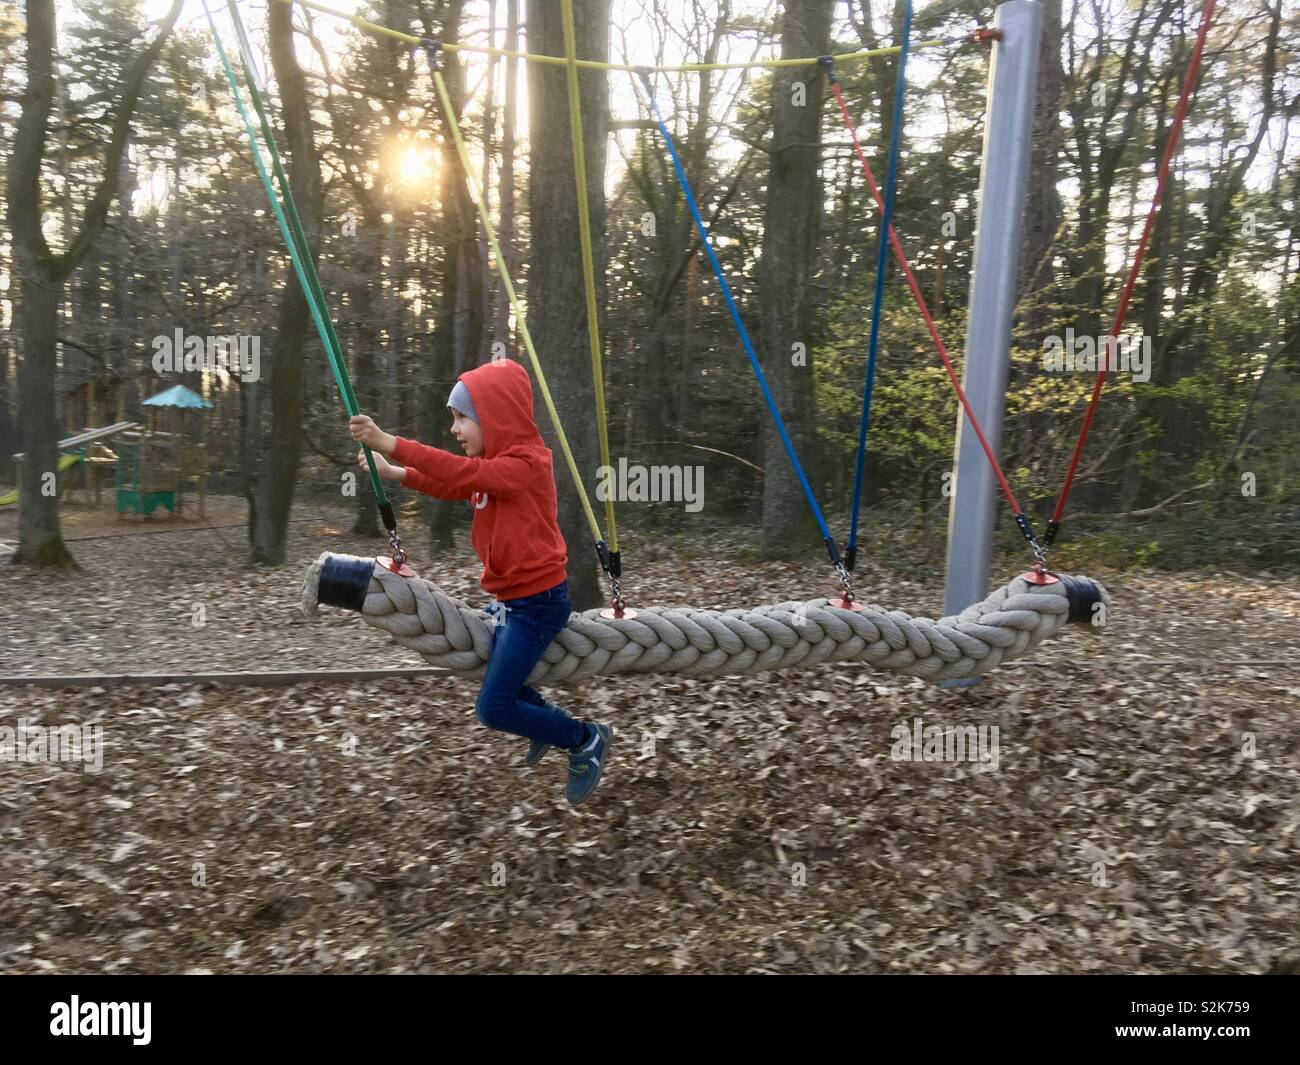 Child swinging in forest playground - Stock Image